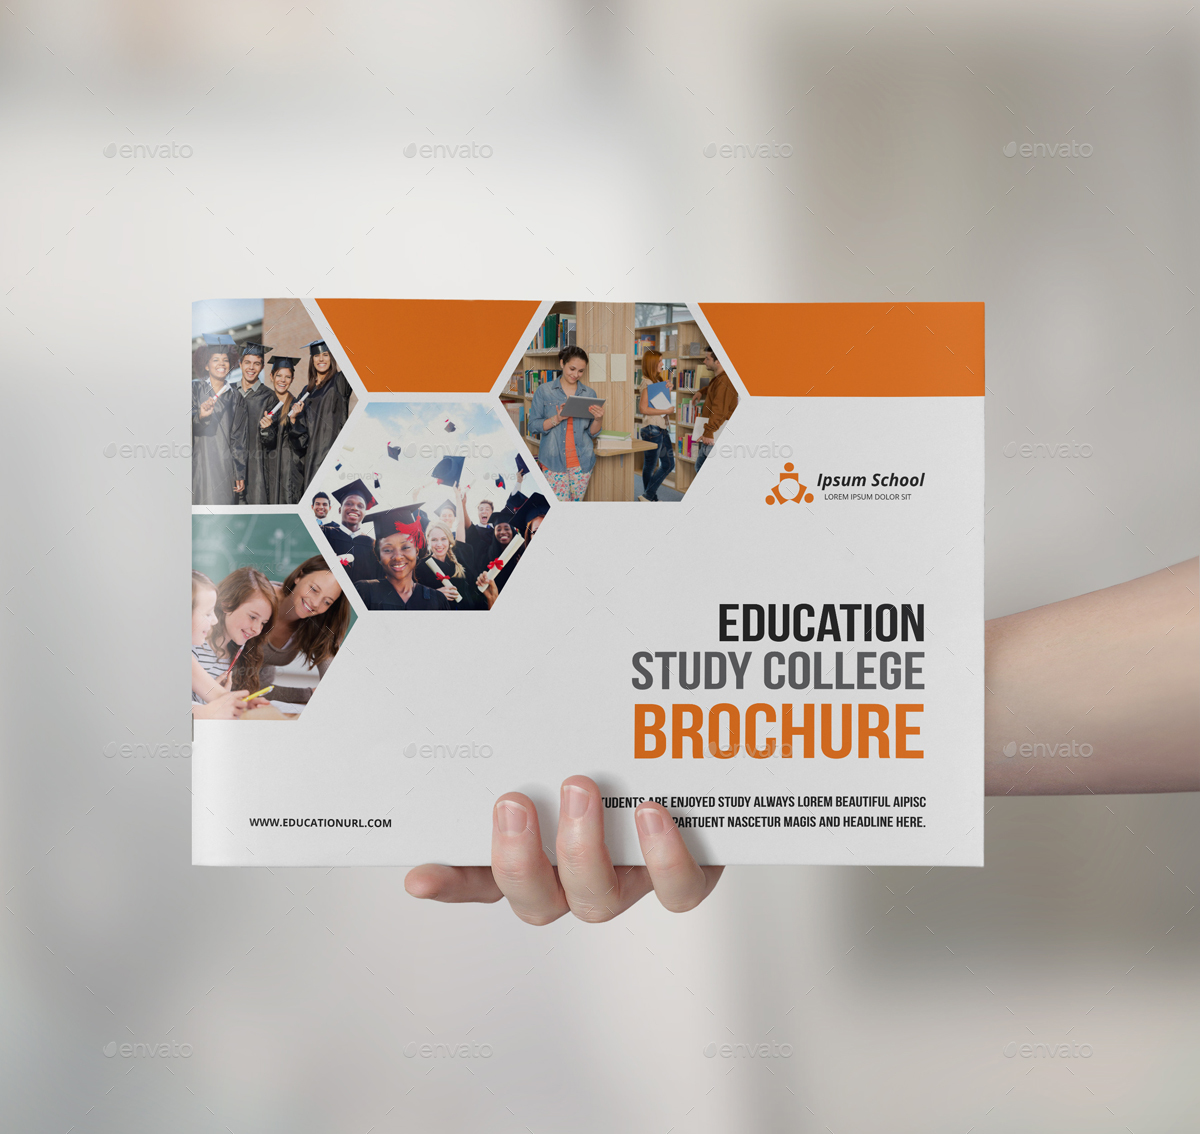 15+ FREE Educational Brochure Templates - Word (DOC) | PSD ... |Brochure Design Education